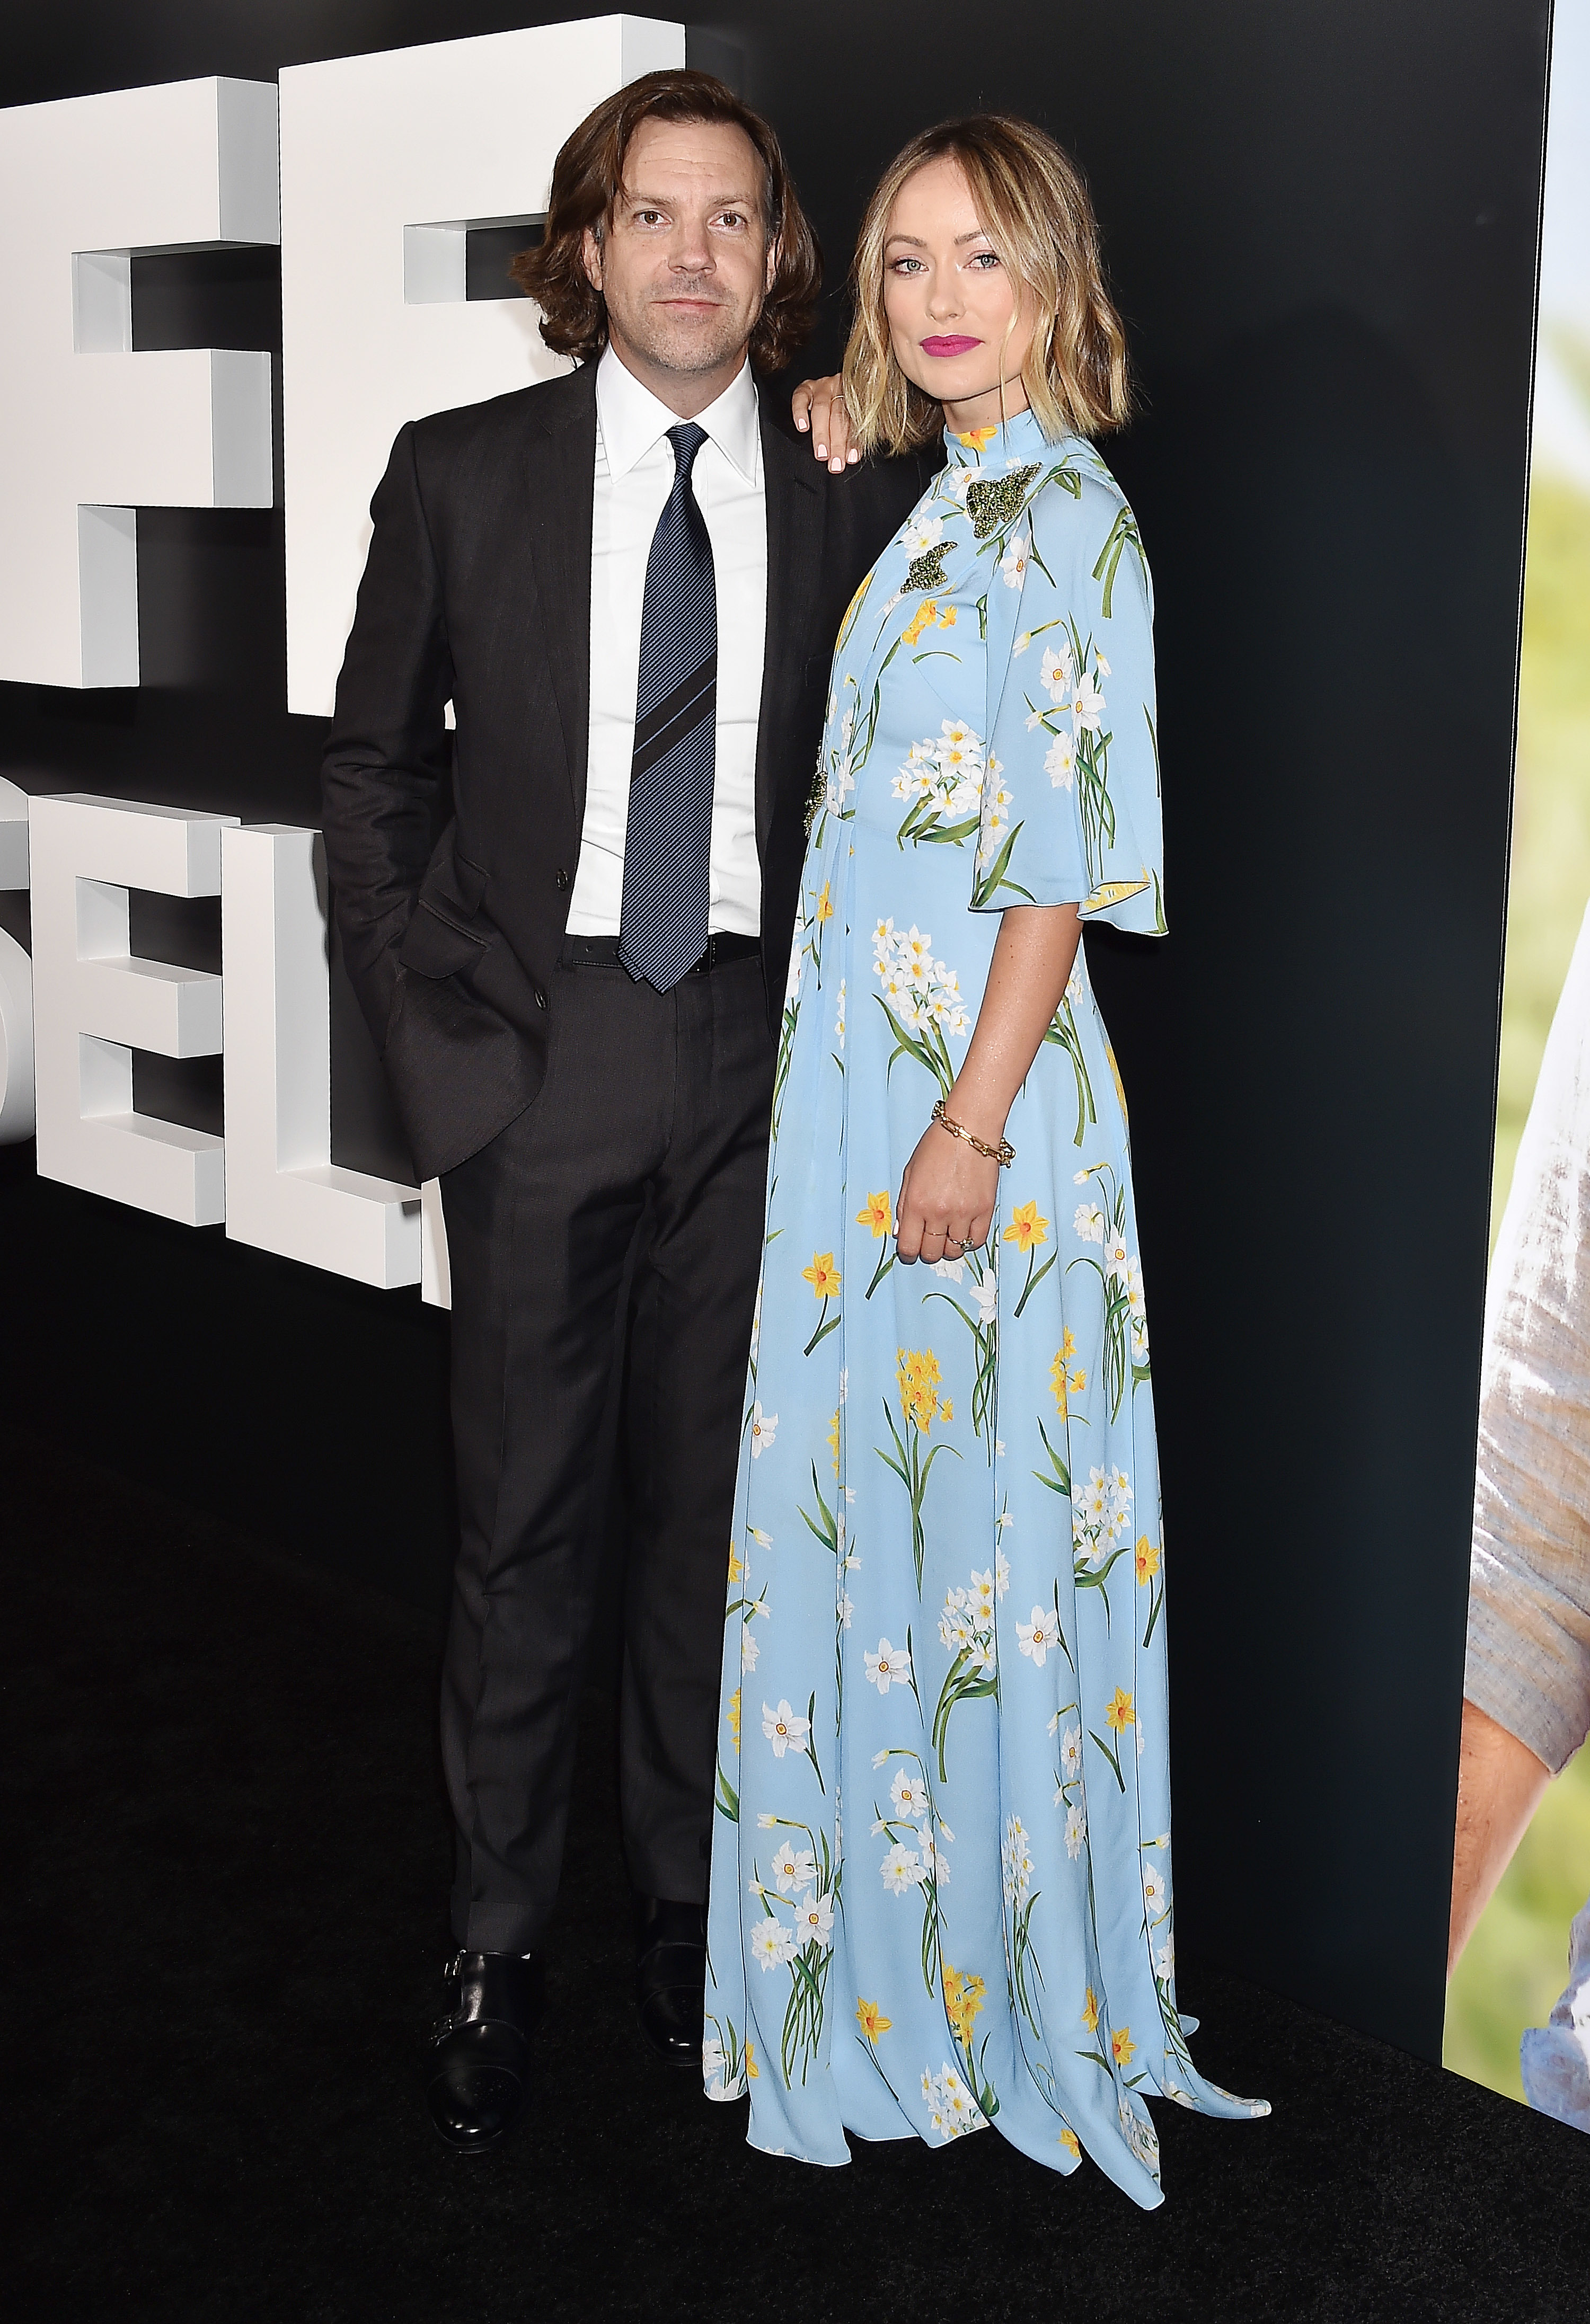 """Jason Sudeikis and Olivia Wilde attend the """"Life Itself"""" film premiere in Los Angeles on Sept. 13, 2018."""